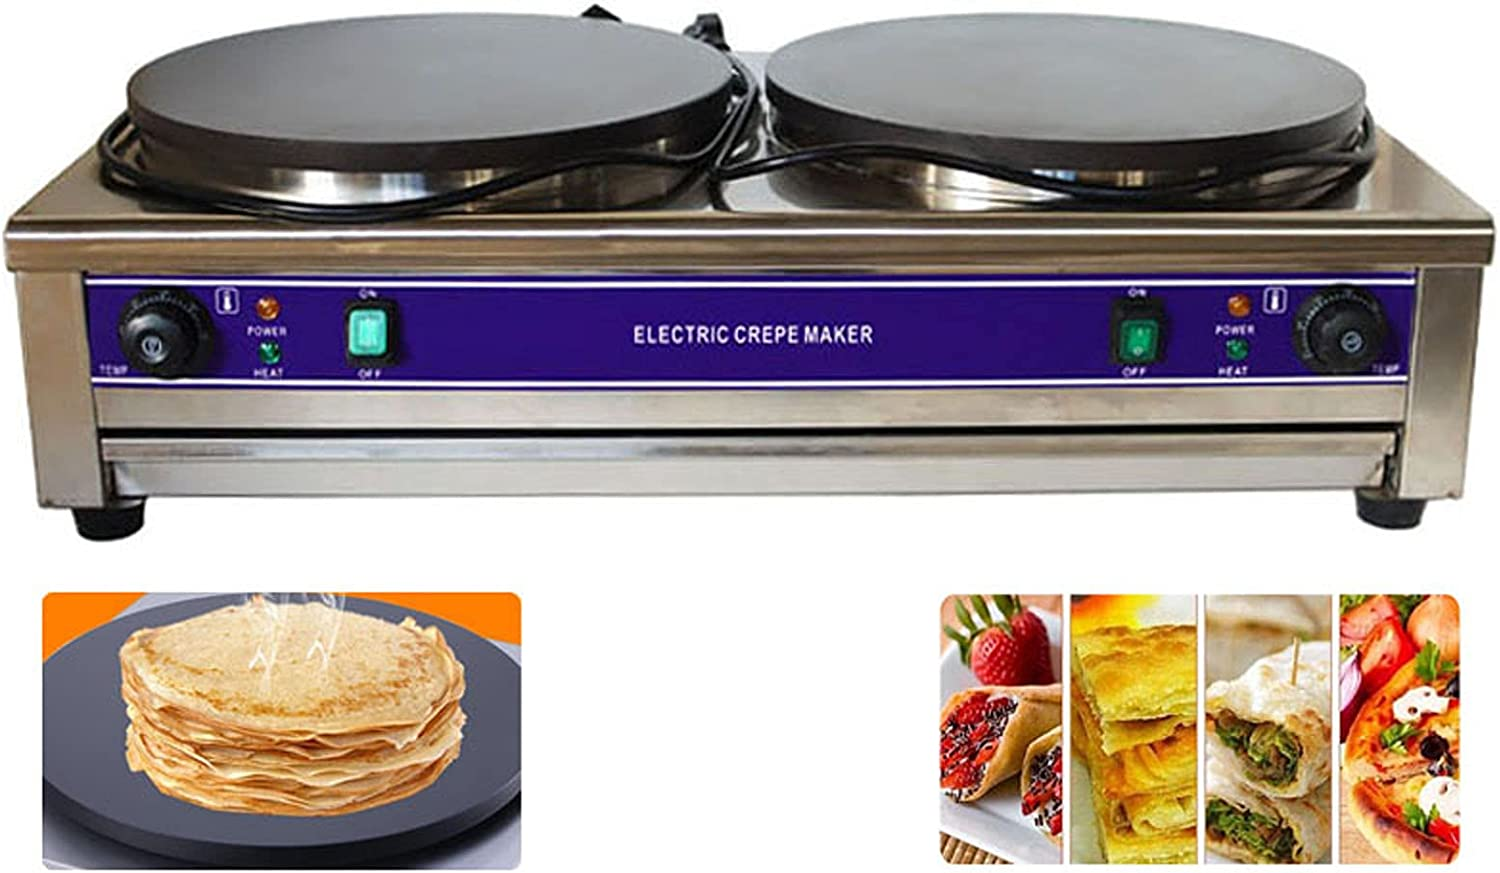 INTSUPERMAI Commercial Crepe Fees free Ranking TOP13 Maker Panc and Electric